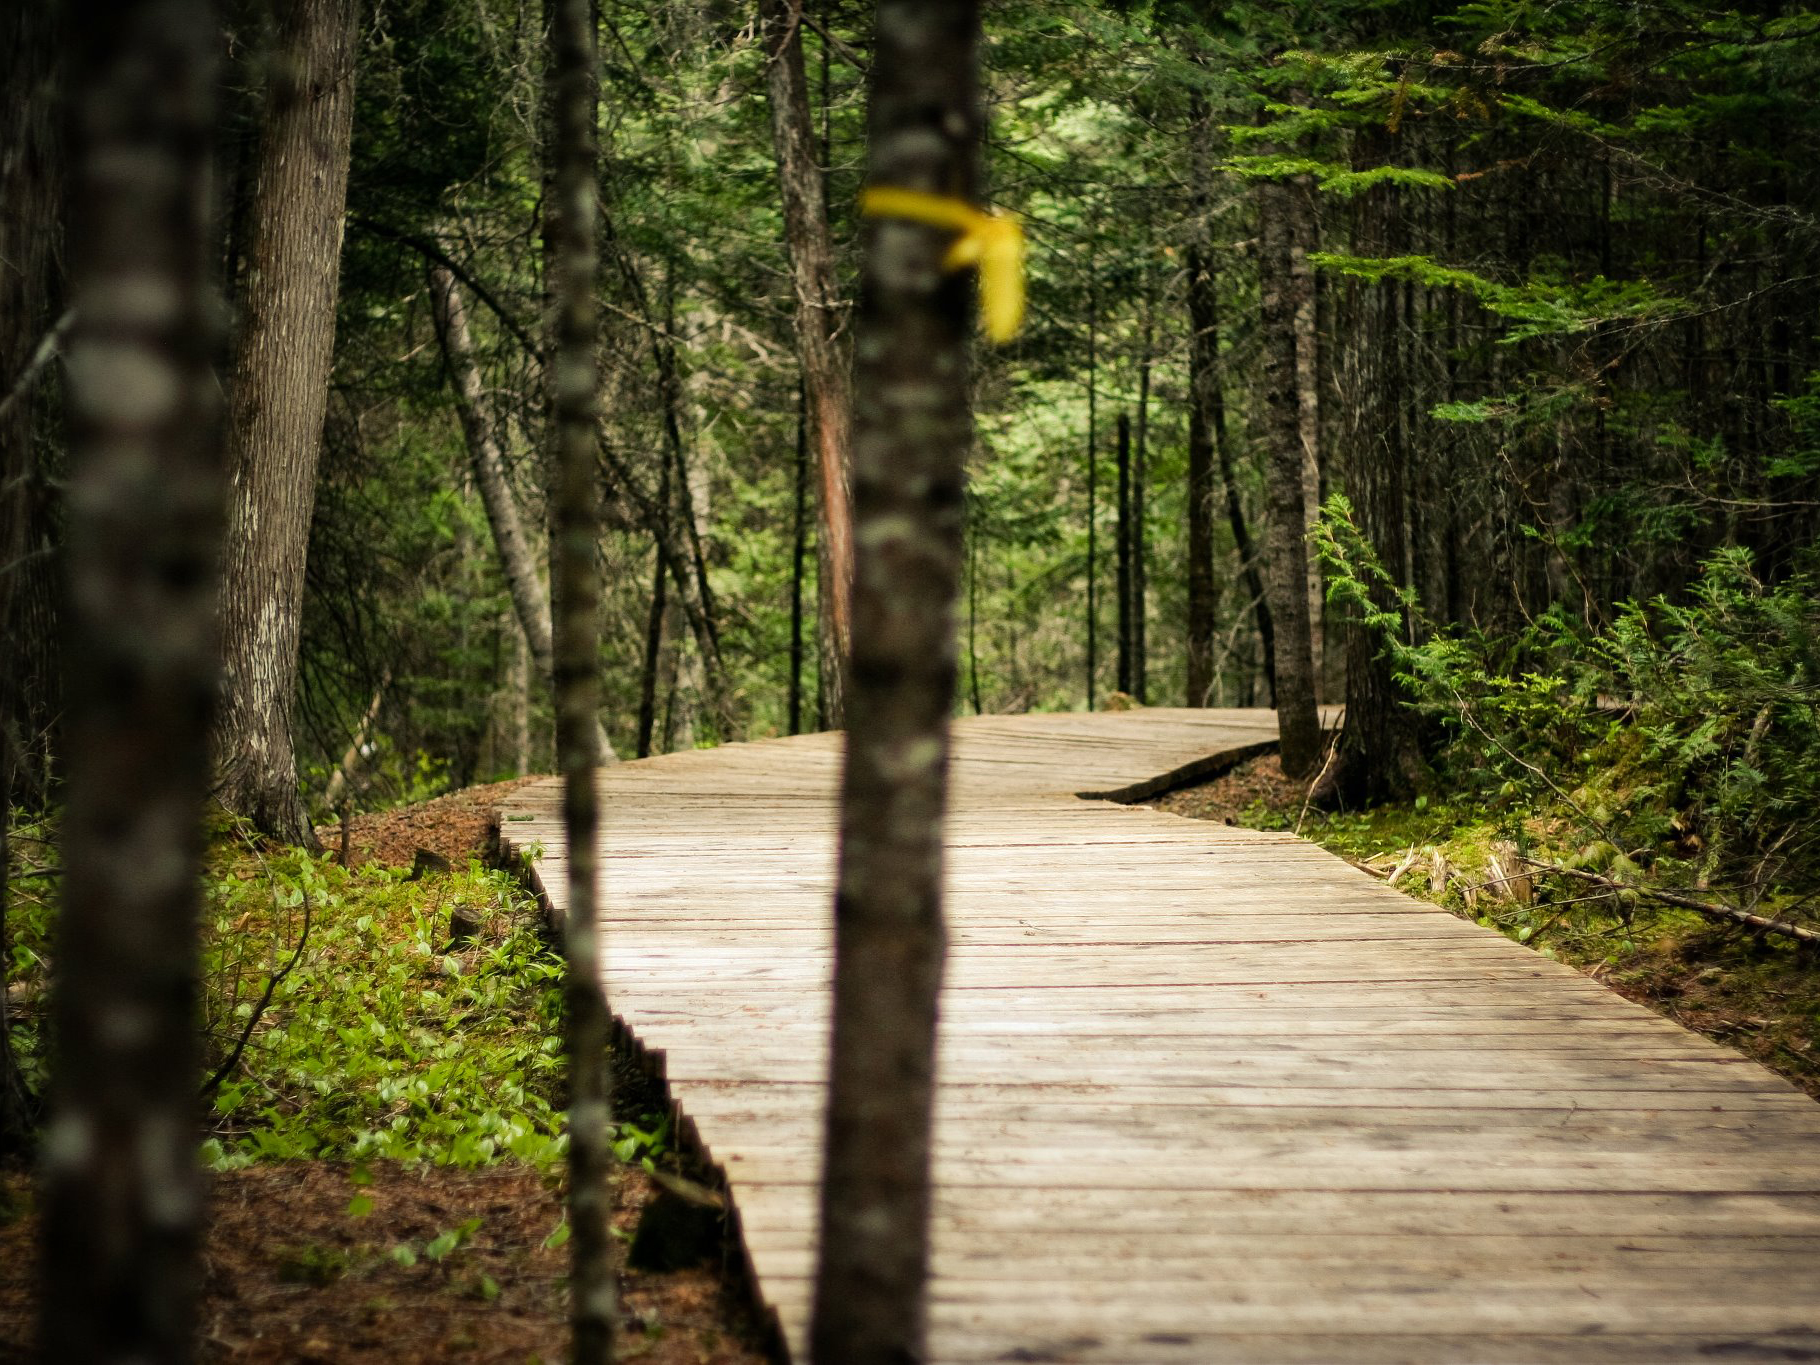 Mountain biking seems harmless but can damage soil and scare wildlife. Image: vonm.ca